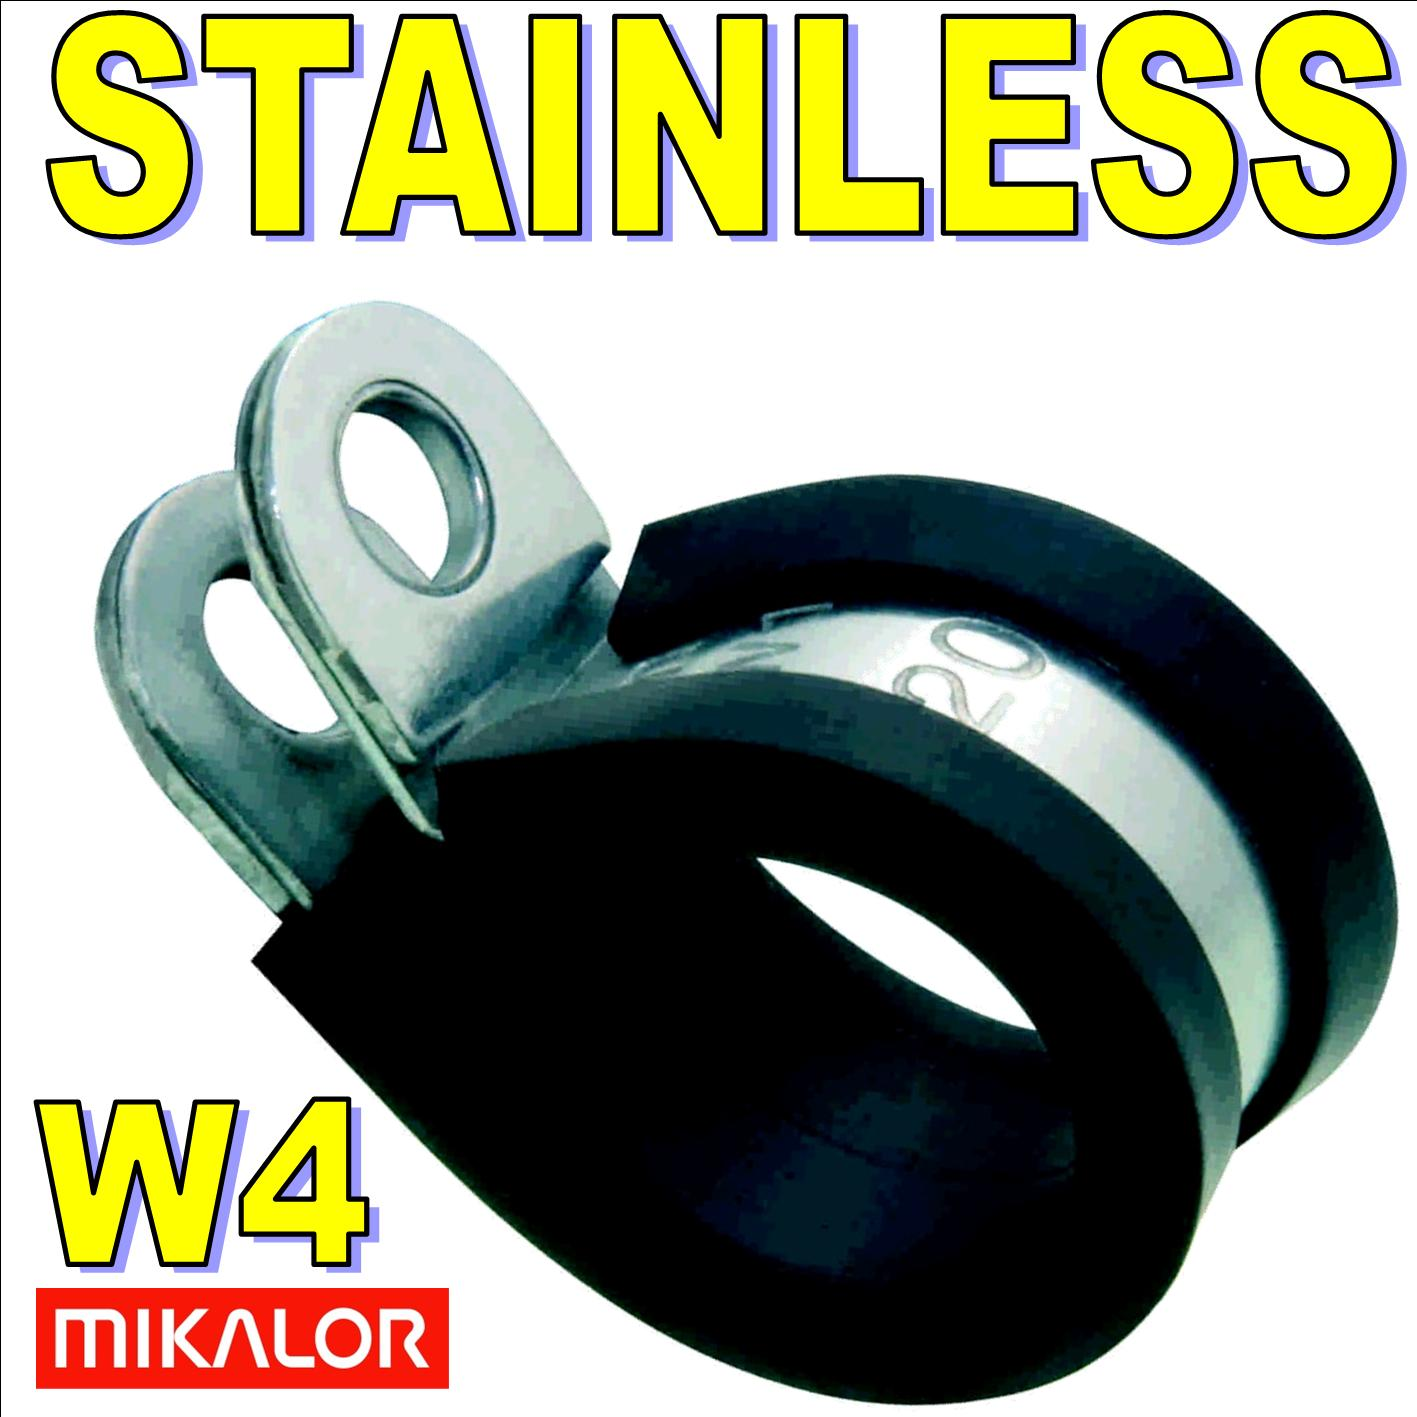 40mm W4 Stainless Steel Rubber Lined P Clip